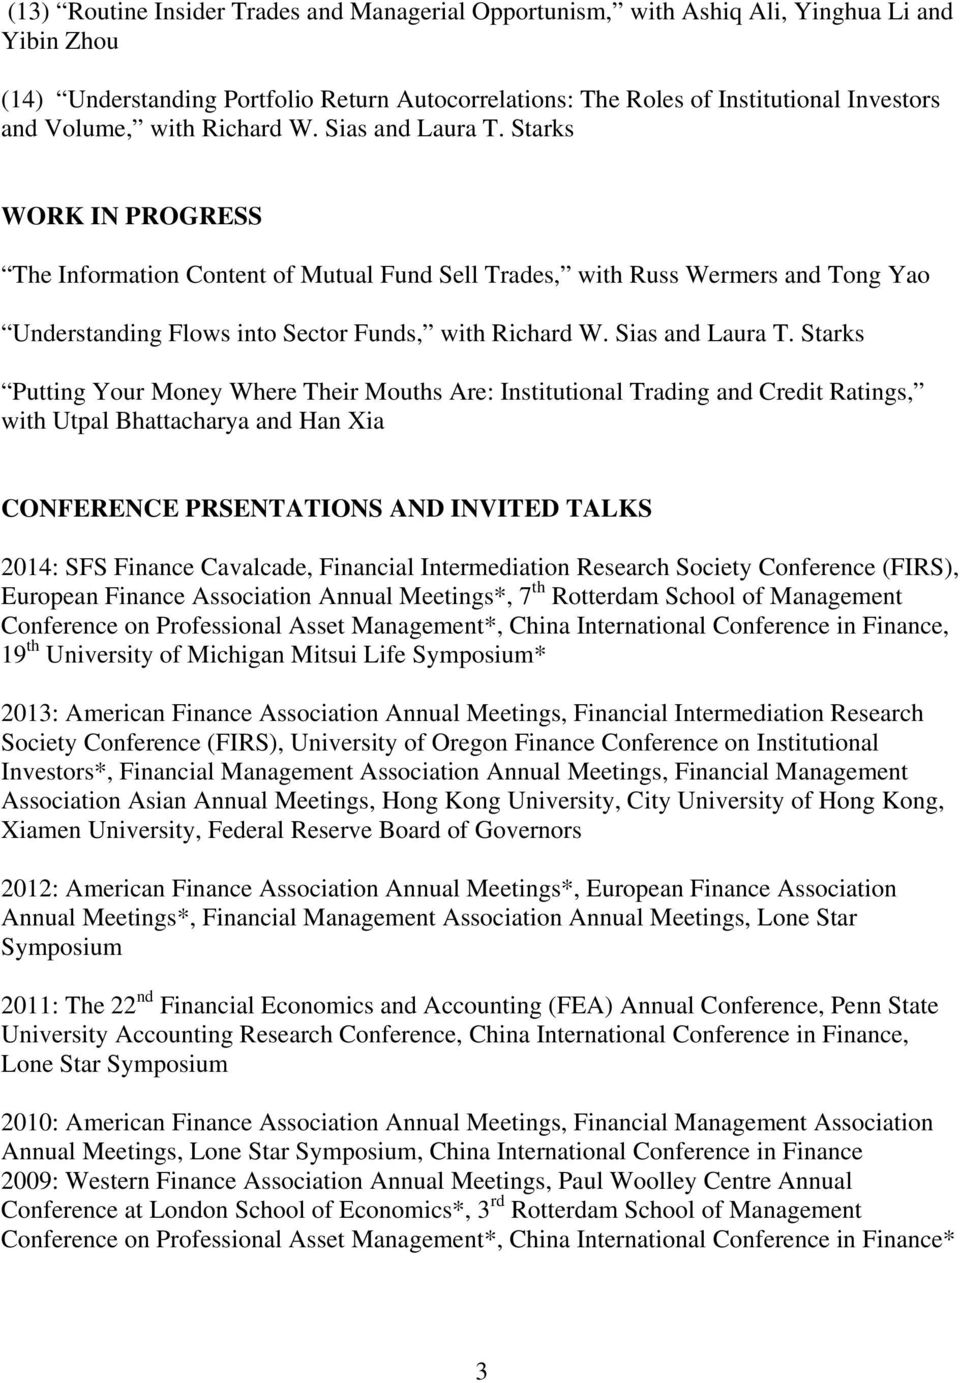 Starks WORK IN PROGRESS The Information Content of Mutual Fund Sell Trades, with Russ Wermers and Tong Yao Understanding Flows into Sector Funds, with Richard W. Sias and Laura T.